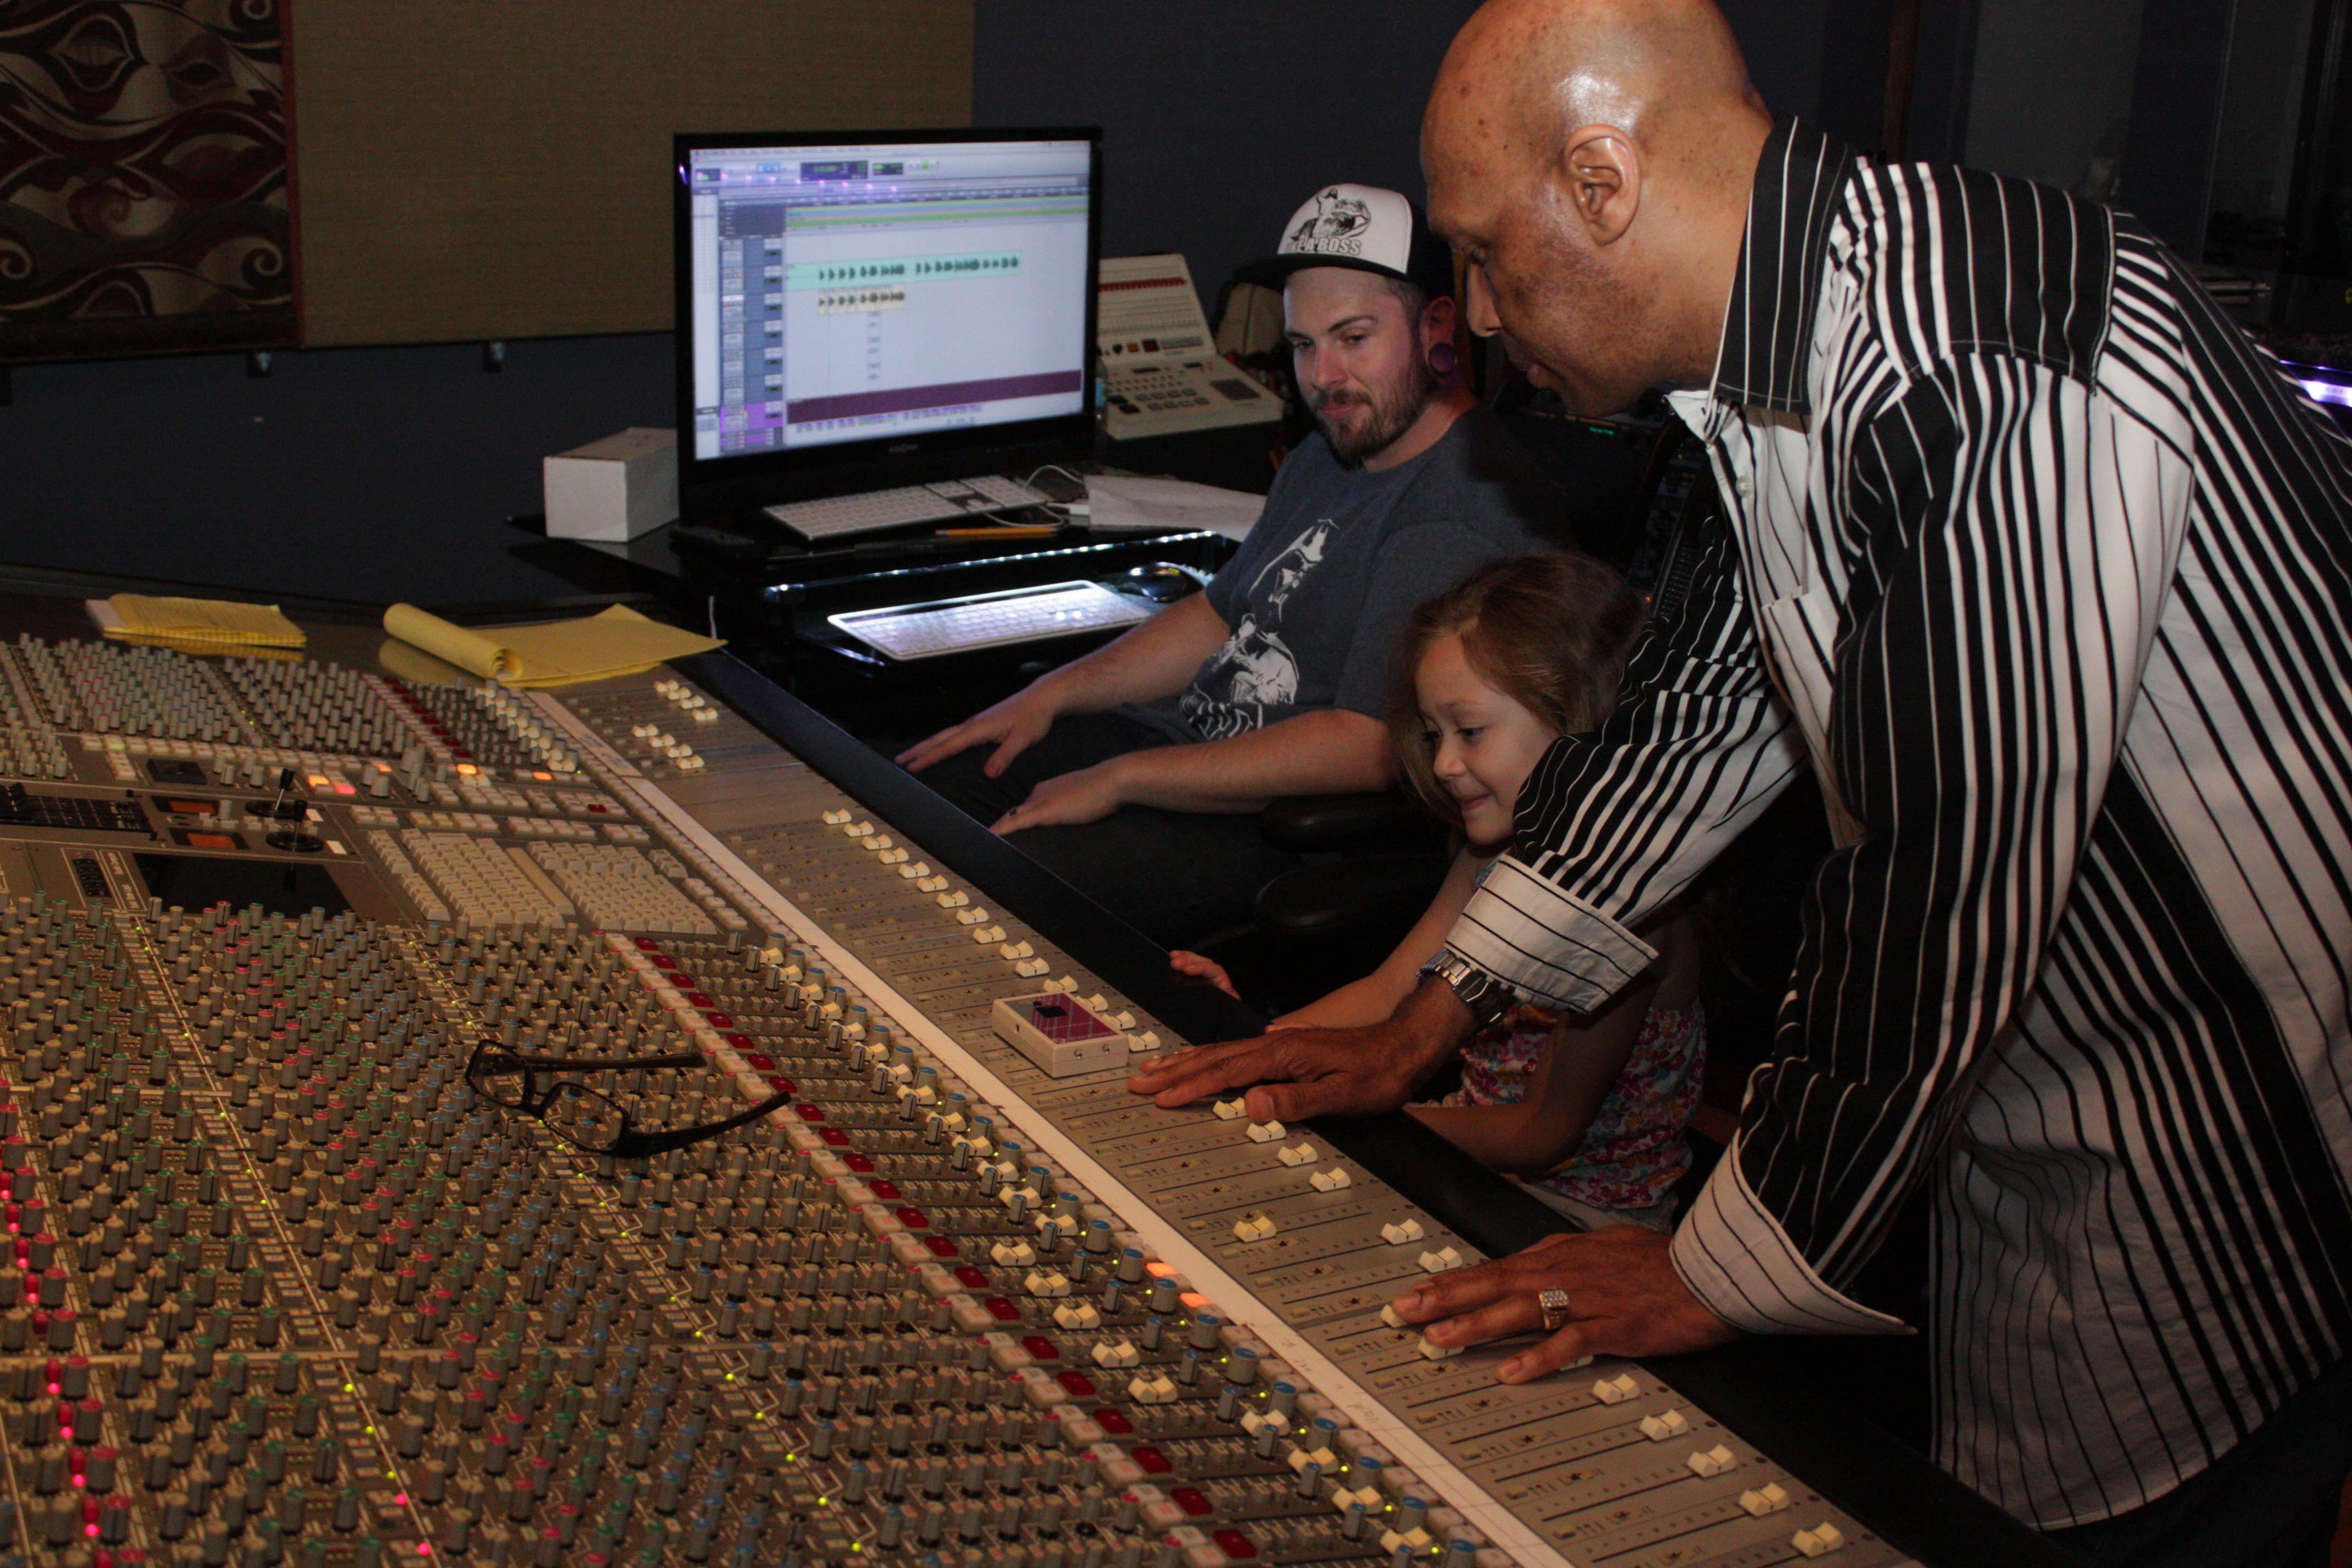 working the SSL 4000